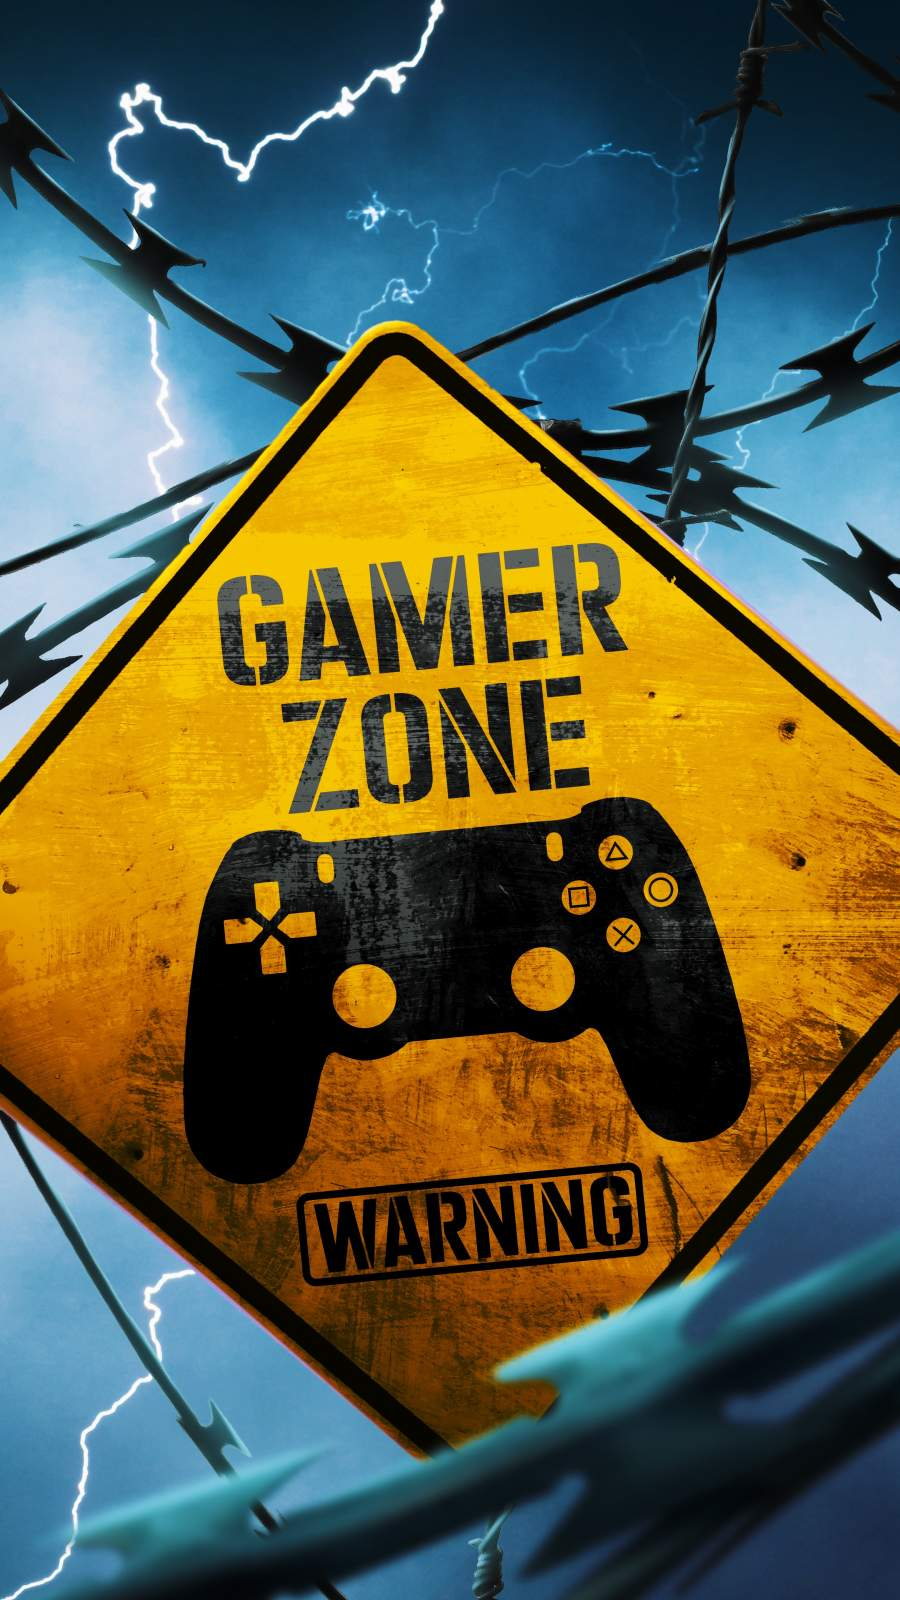 Gamer Zone Warning iPhone Wallpaper